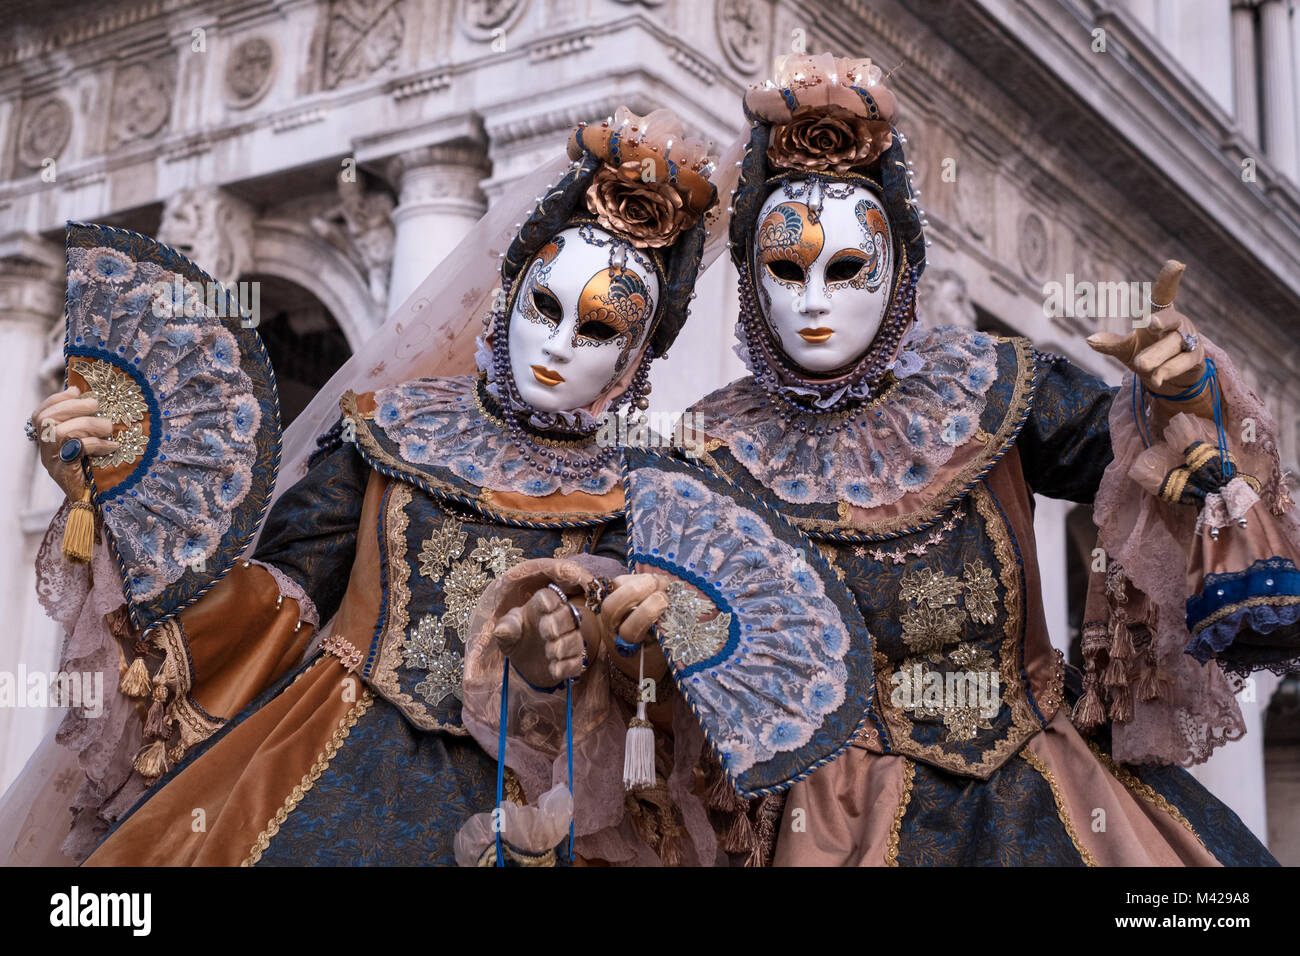 Two women in traditional costumes and masks, with decorated fans, standing in front of the arches at St Marks Square Stock Photo